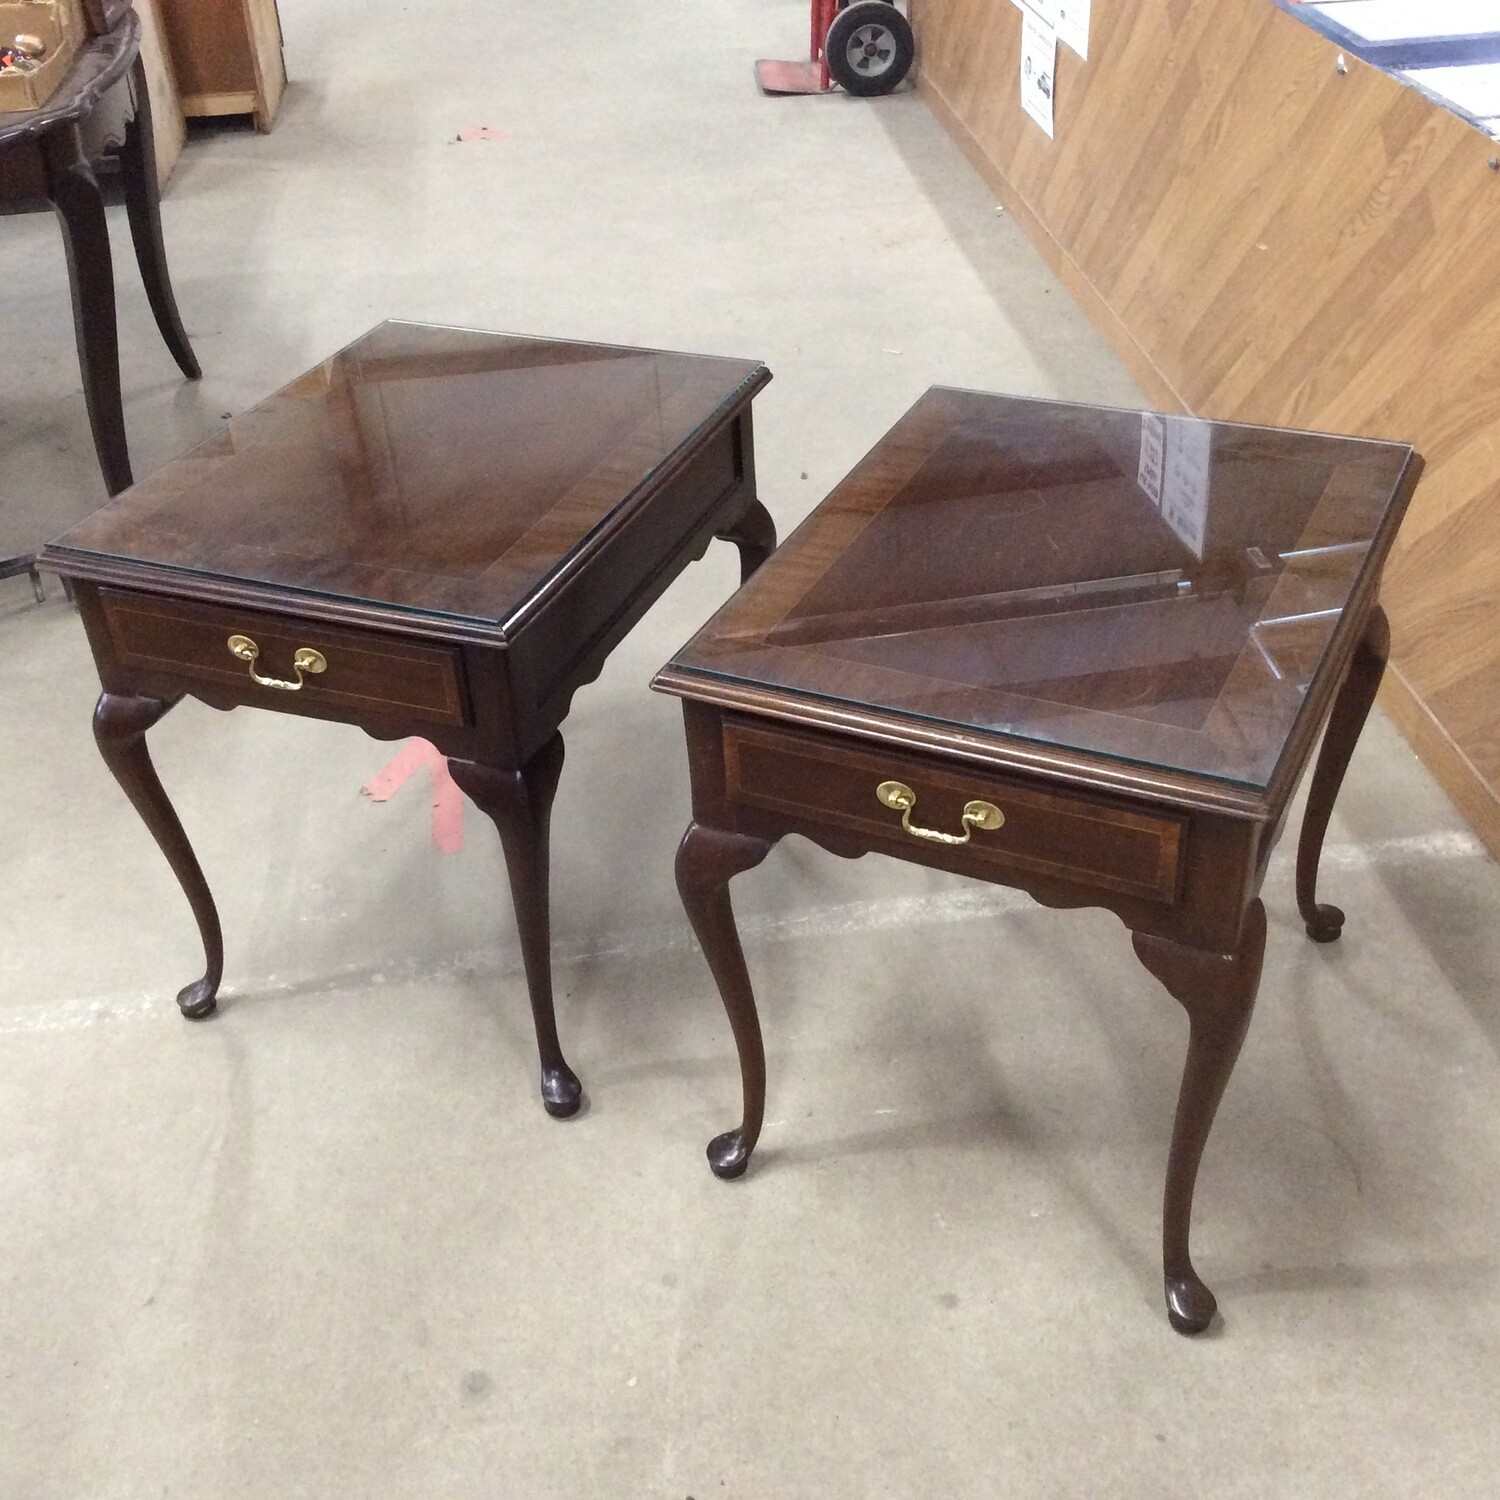 Pair of End Tables by Councill Craftsmen